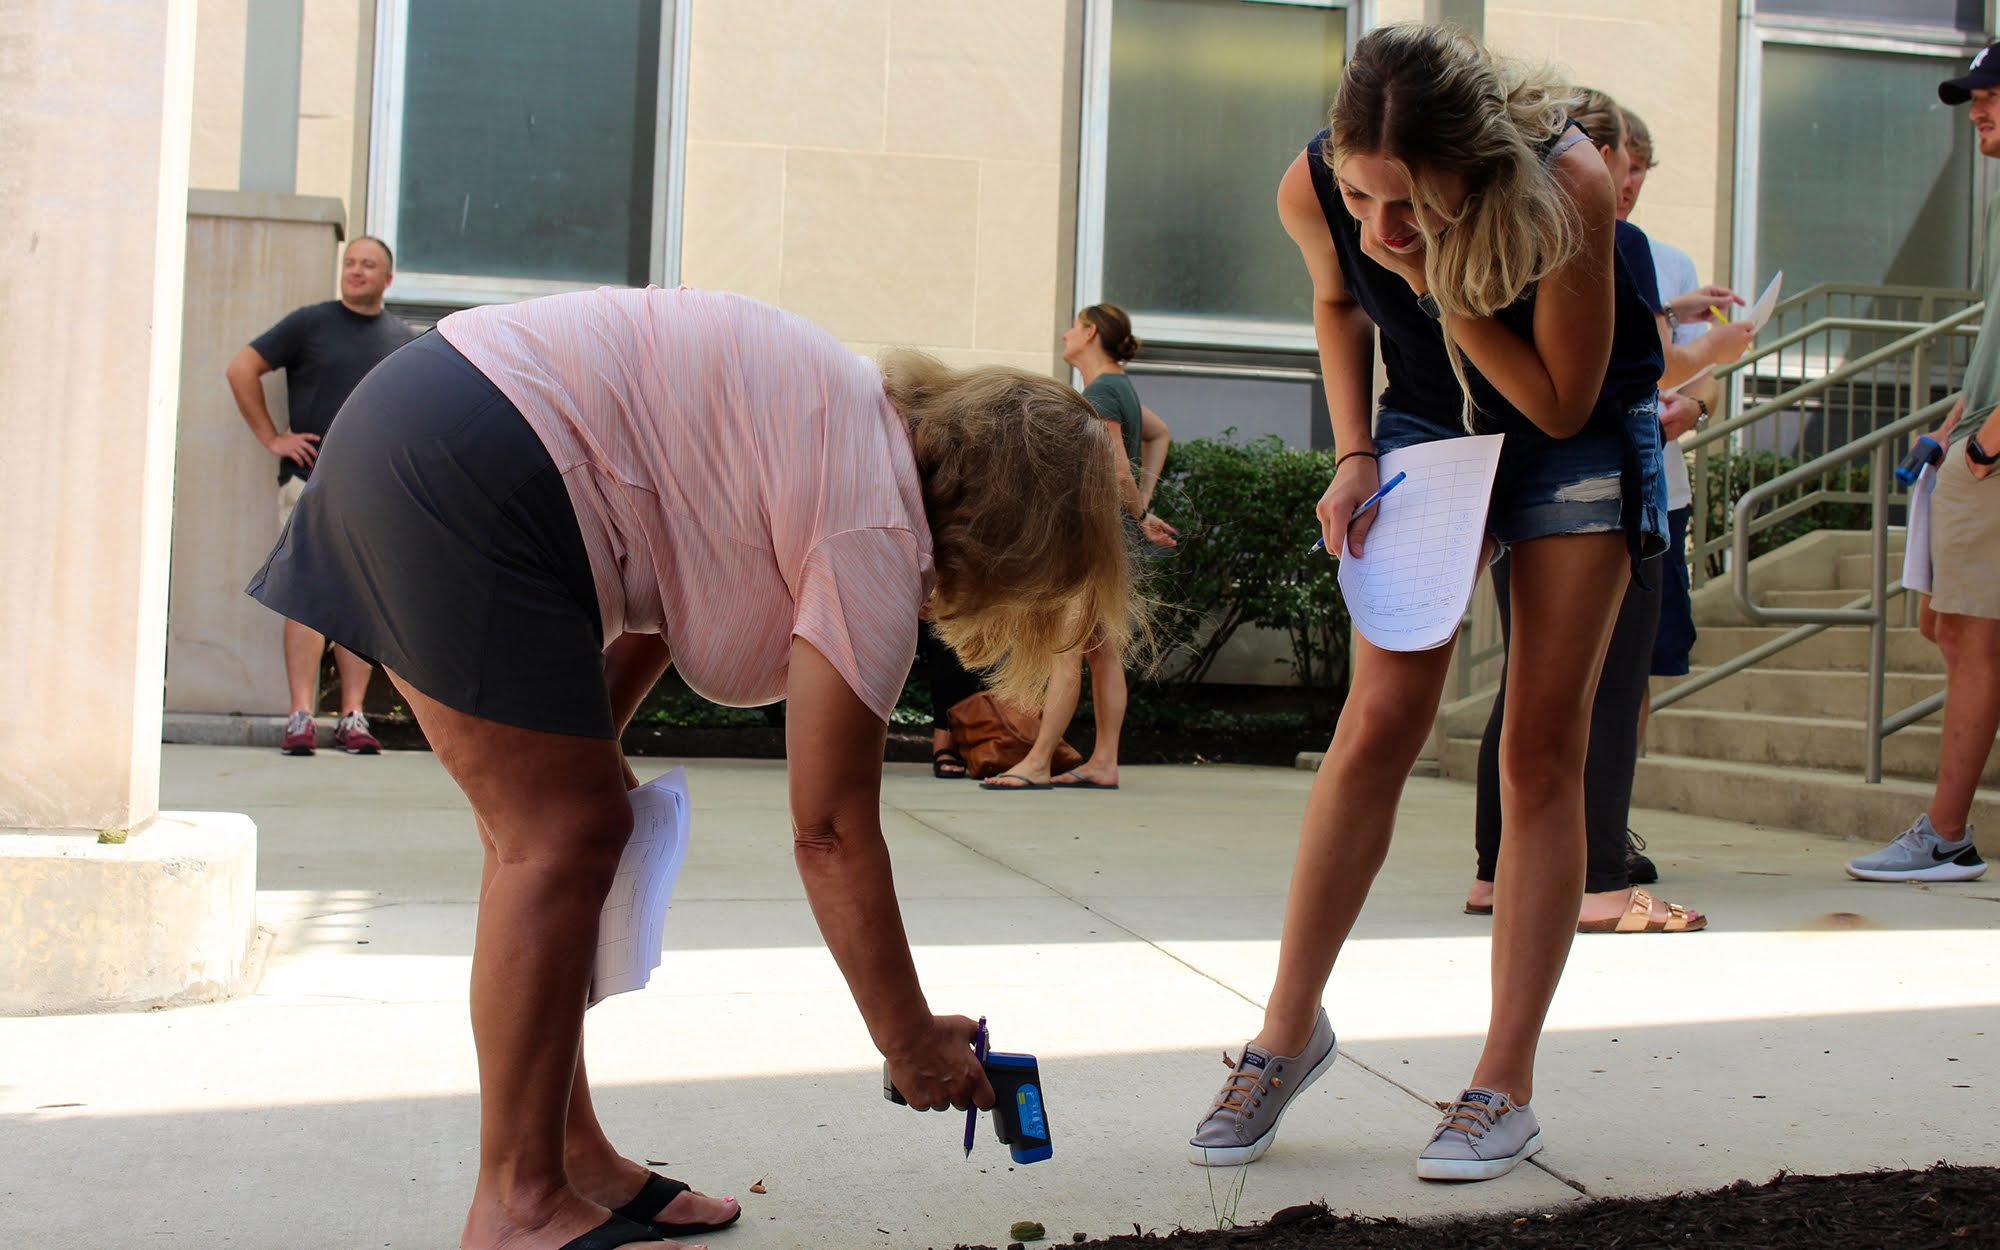 Alderdice High School Biology teachers Angela Linderfelser (left) and Maria Deihl (right), measure and capture temperature data on model frog for climate change experiment at University of Pittsburgh